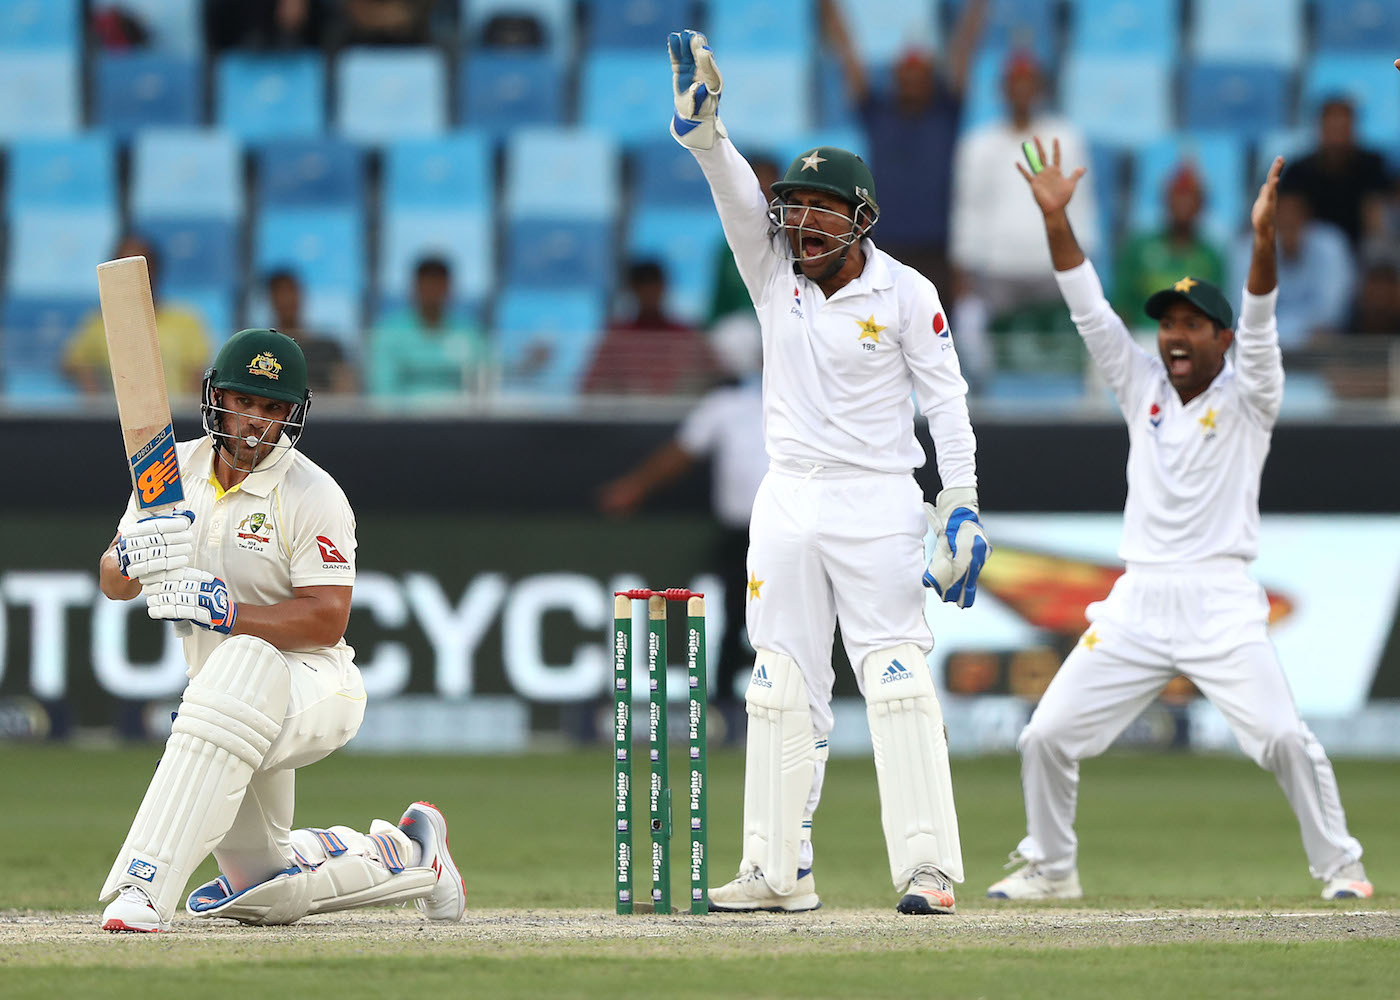 Pakistan can make major gains in ICC Test Rankings with a 3-0 victory over New Zealand